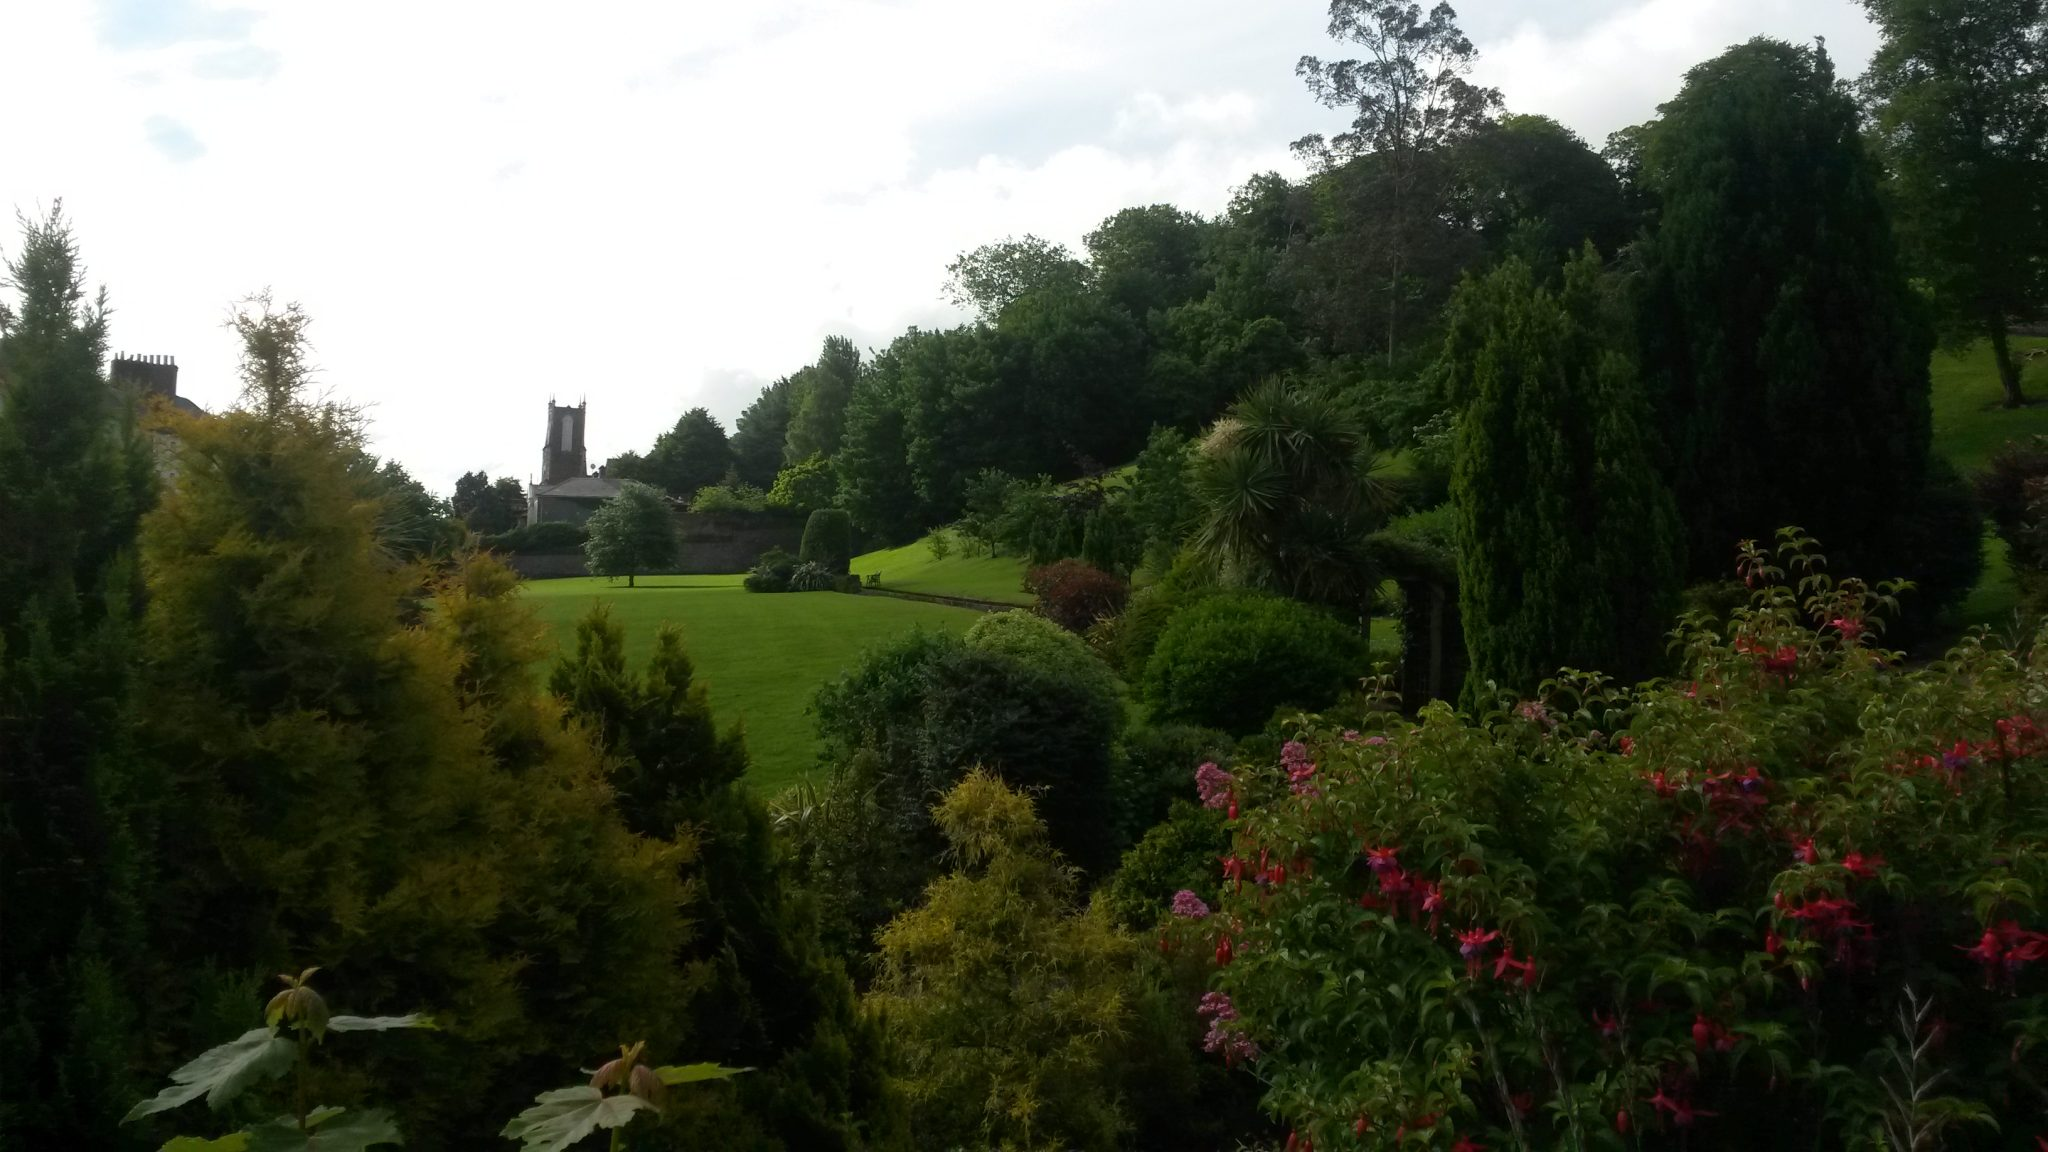 Youghal College Gardens